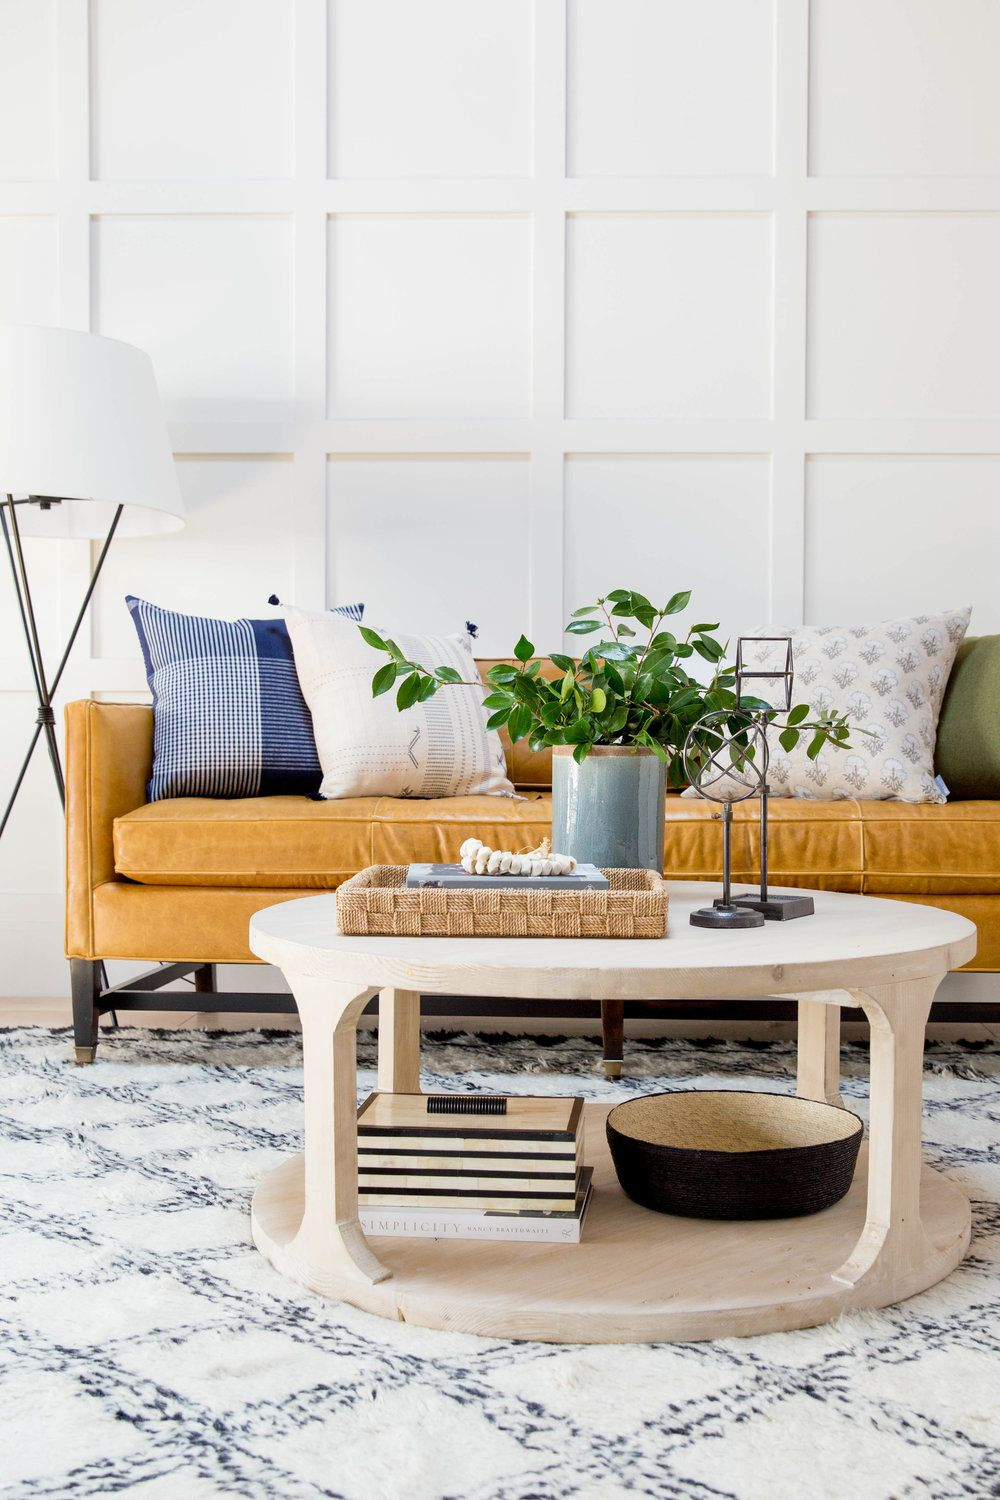 Pin By Tara Free On Styling Round Coffee Table Decor Round Coffee Table Living Room Table Decor Living Room [ 1500 x 1000 Pixel ]